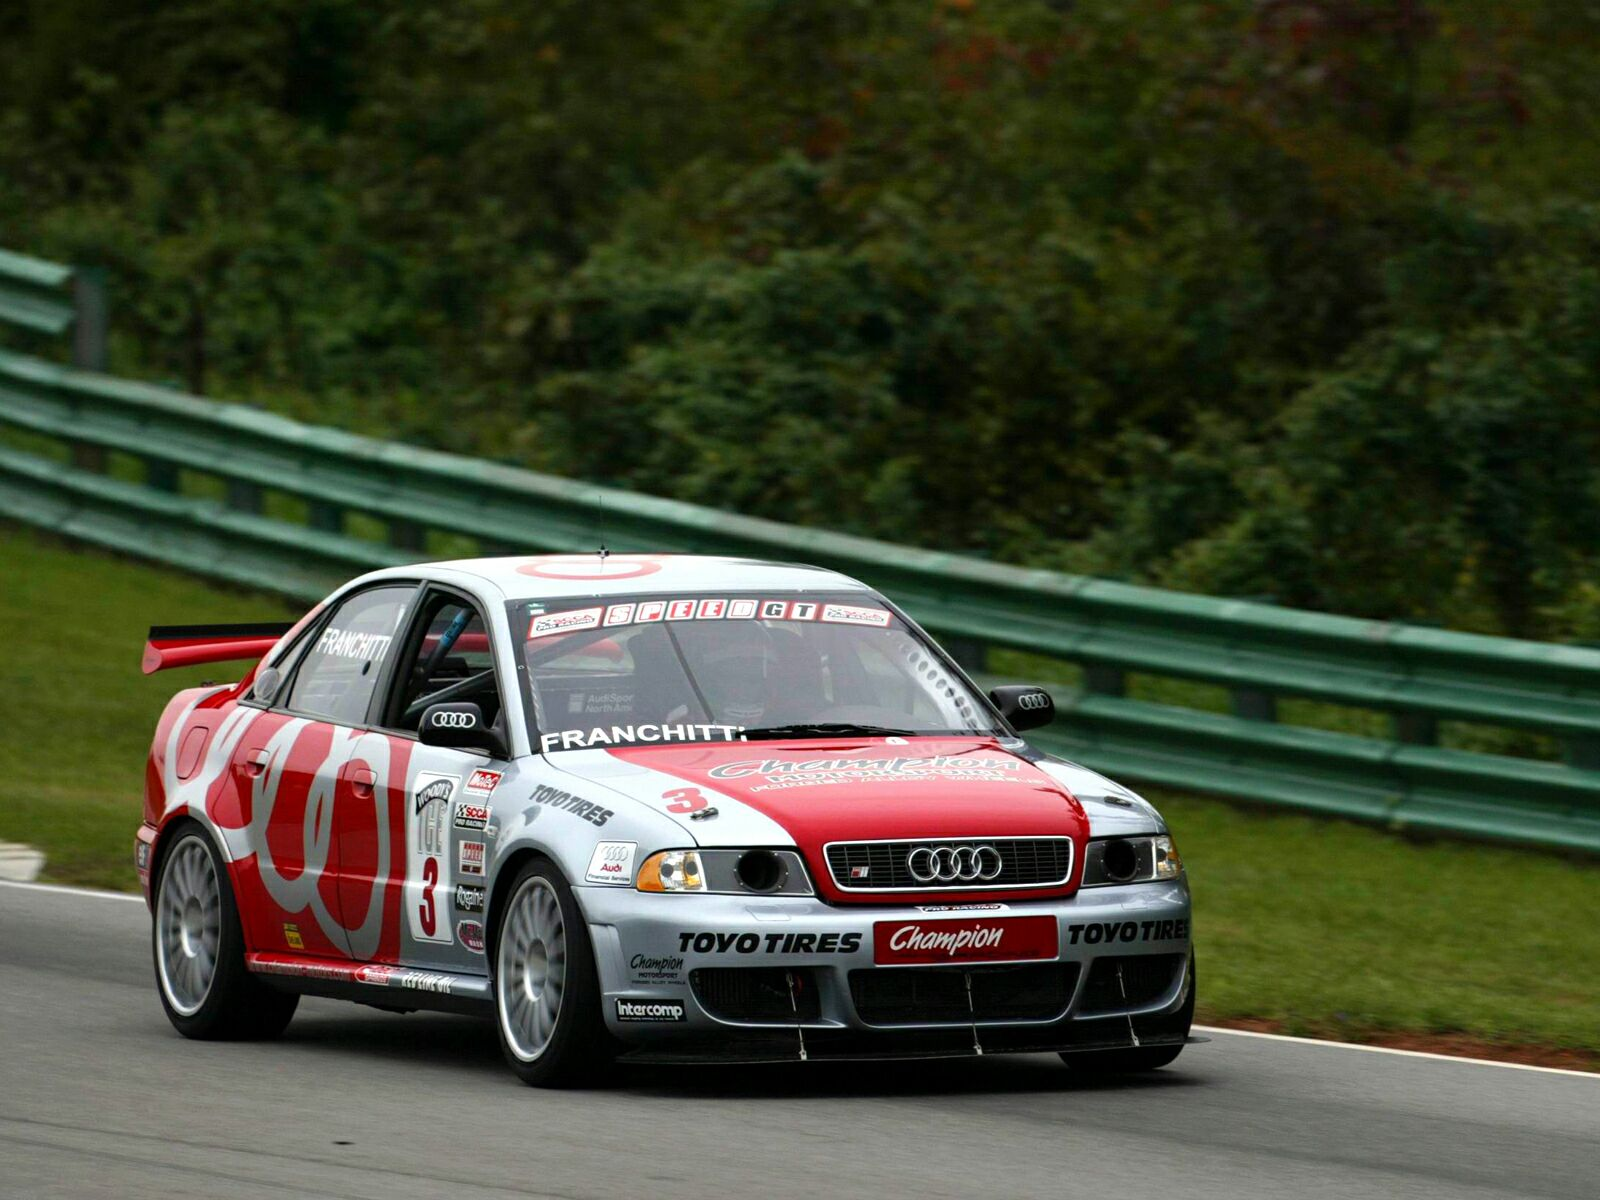 Audi S4 Competition SCCA World Challenge wallpaper 4 1600x1200